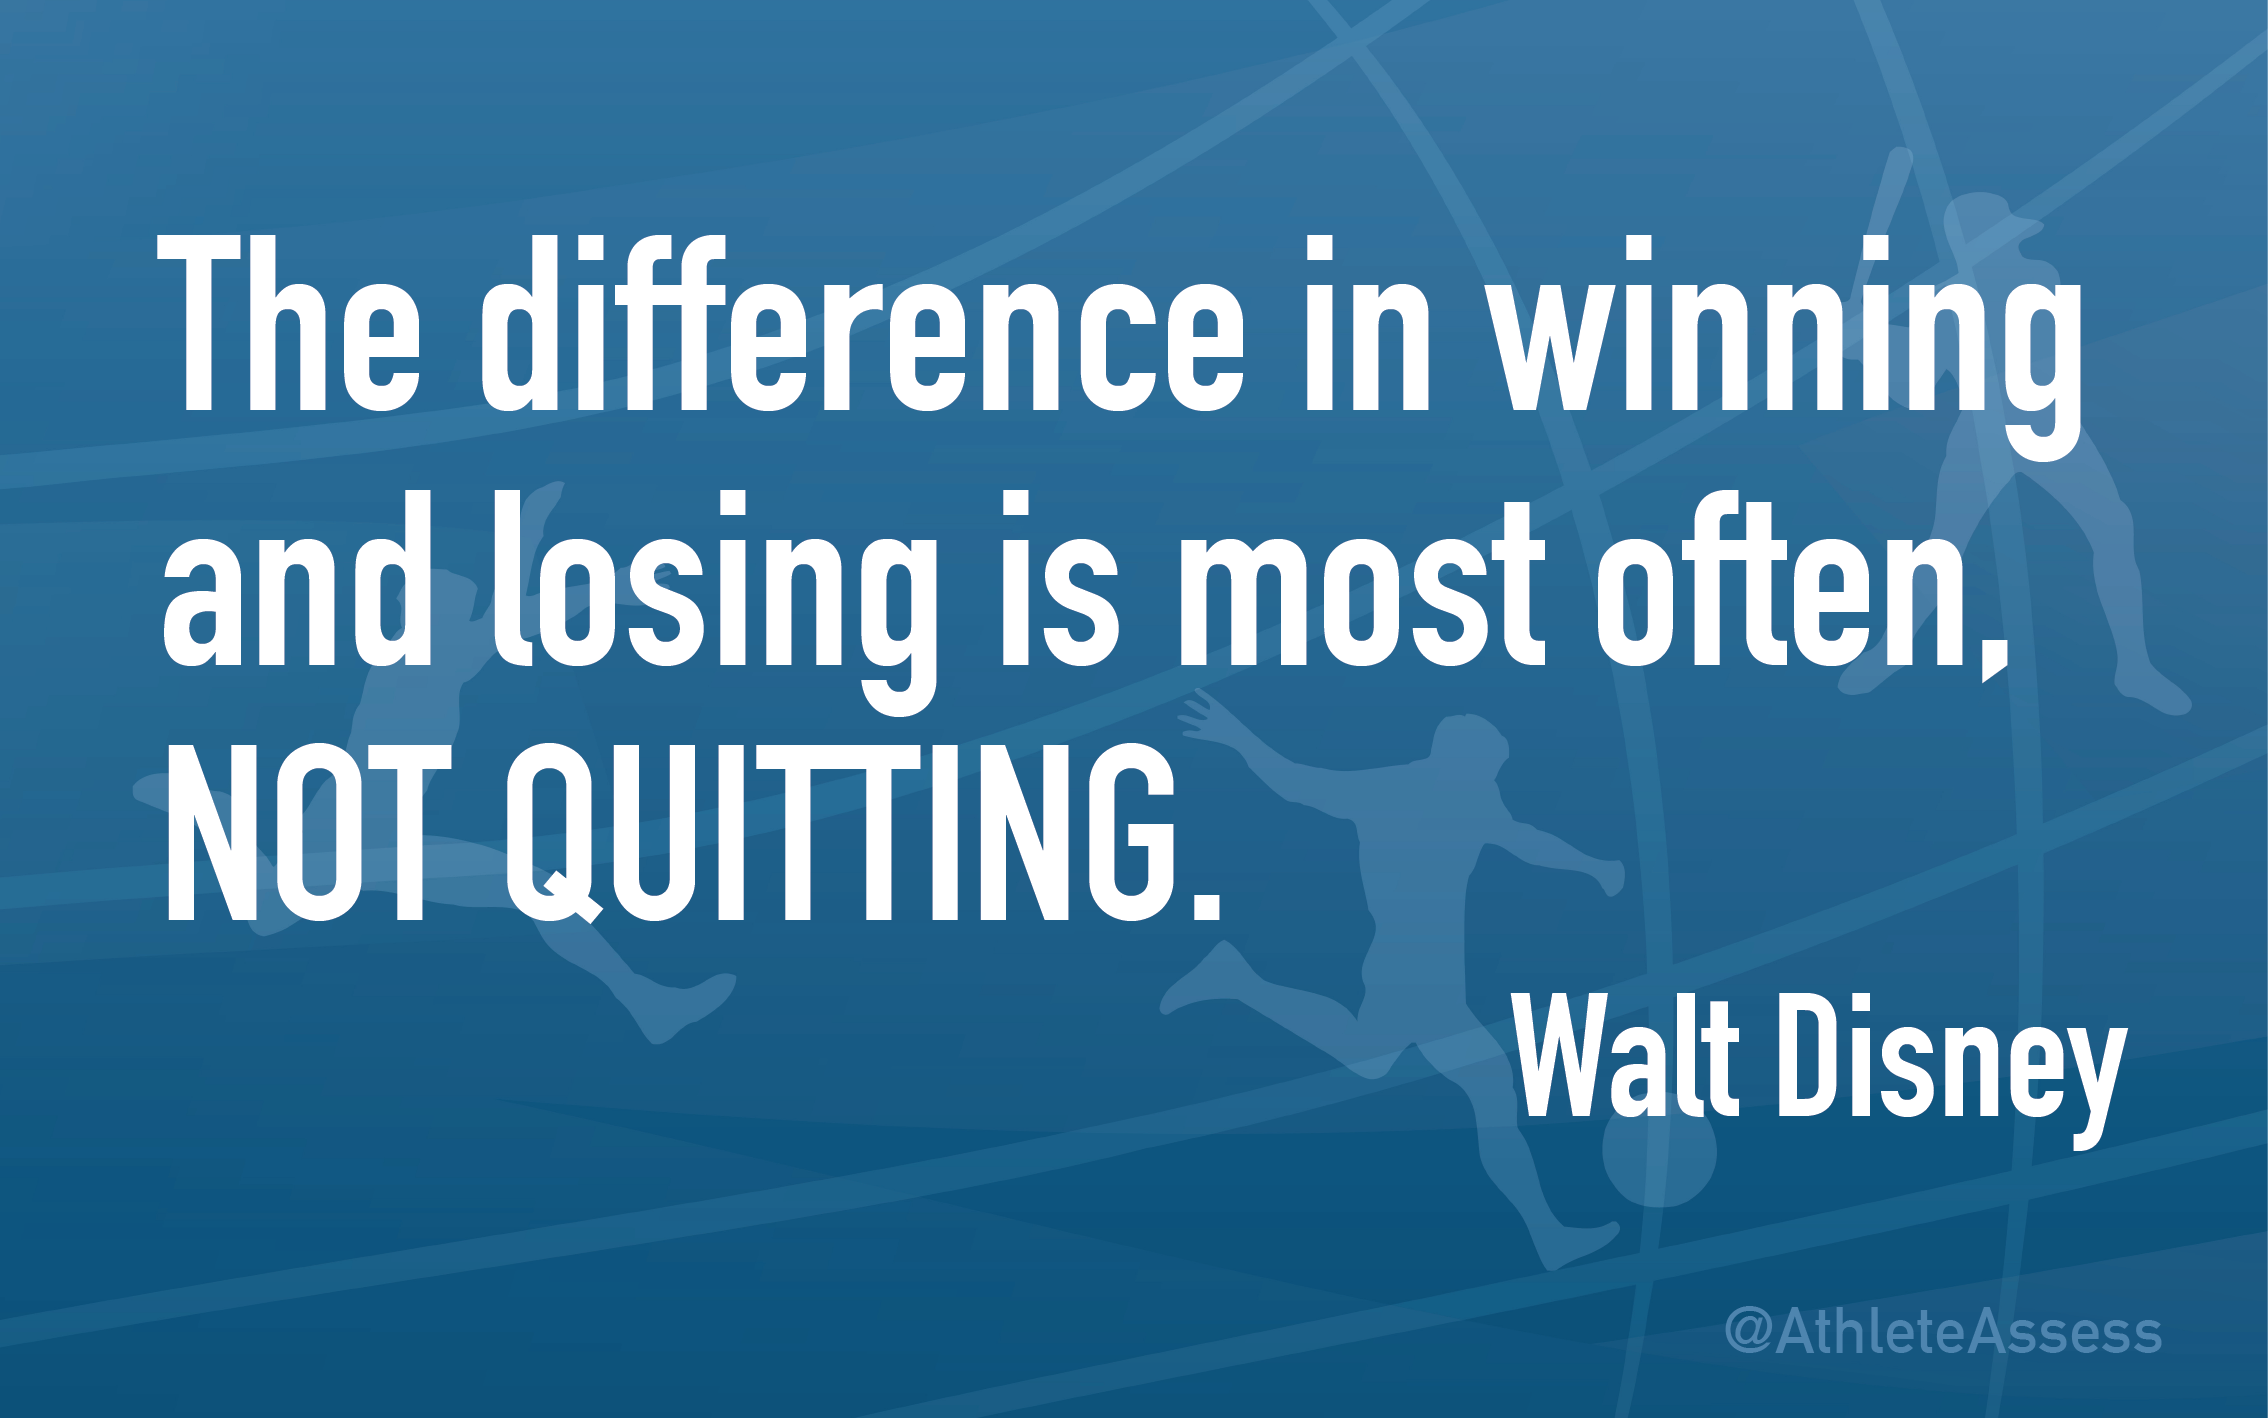 The difference in winning and losing is most often, NOT QUITTING. - Walt Disney